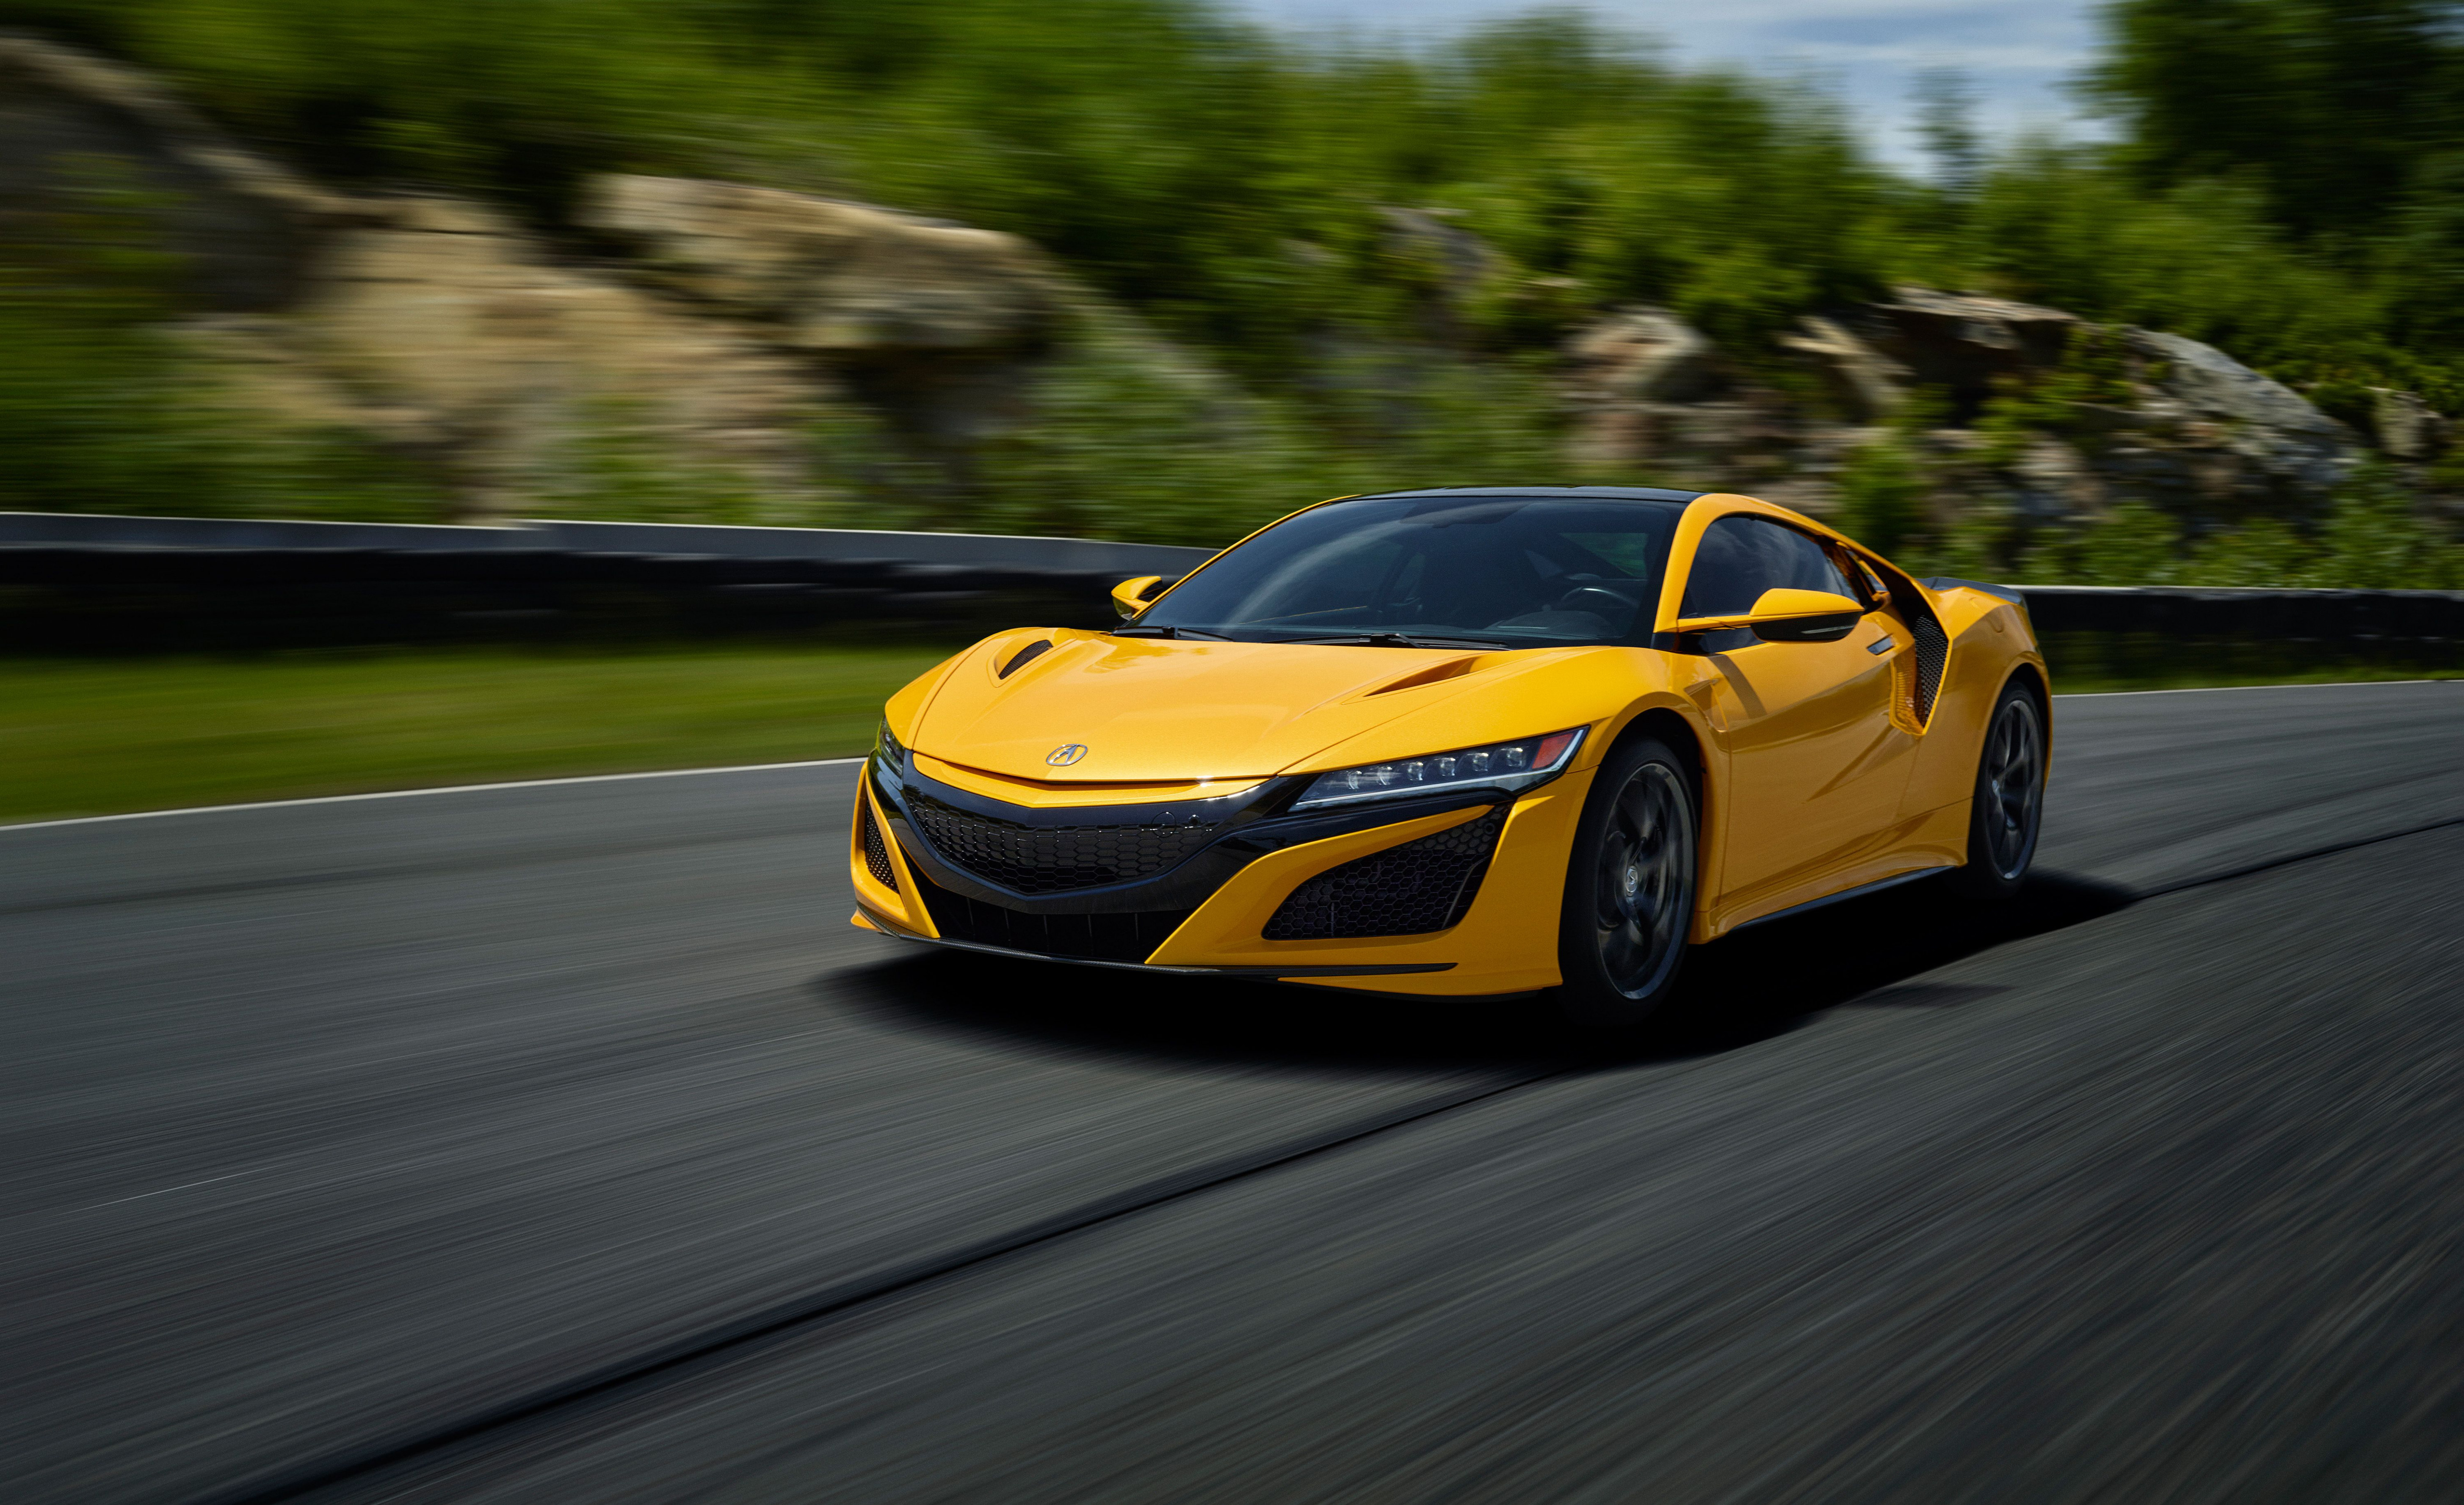 6 Acura NSX Review, Pricing, and Specs